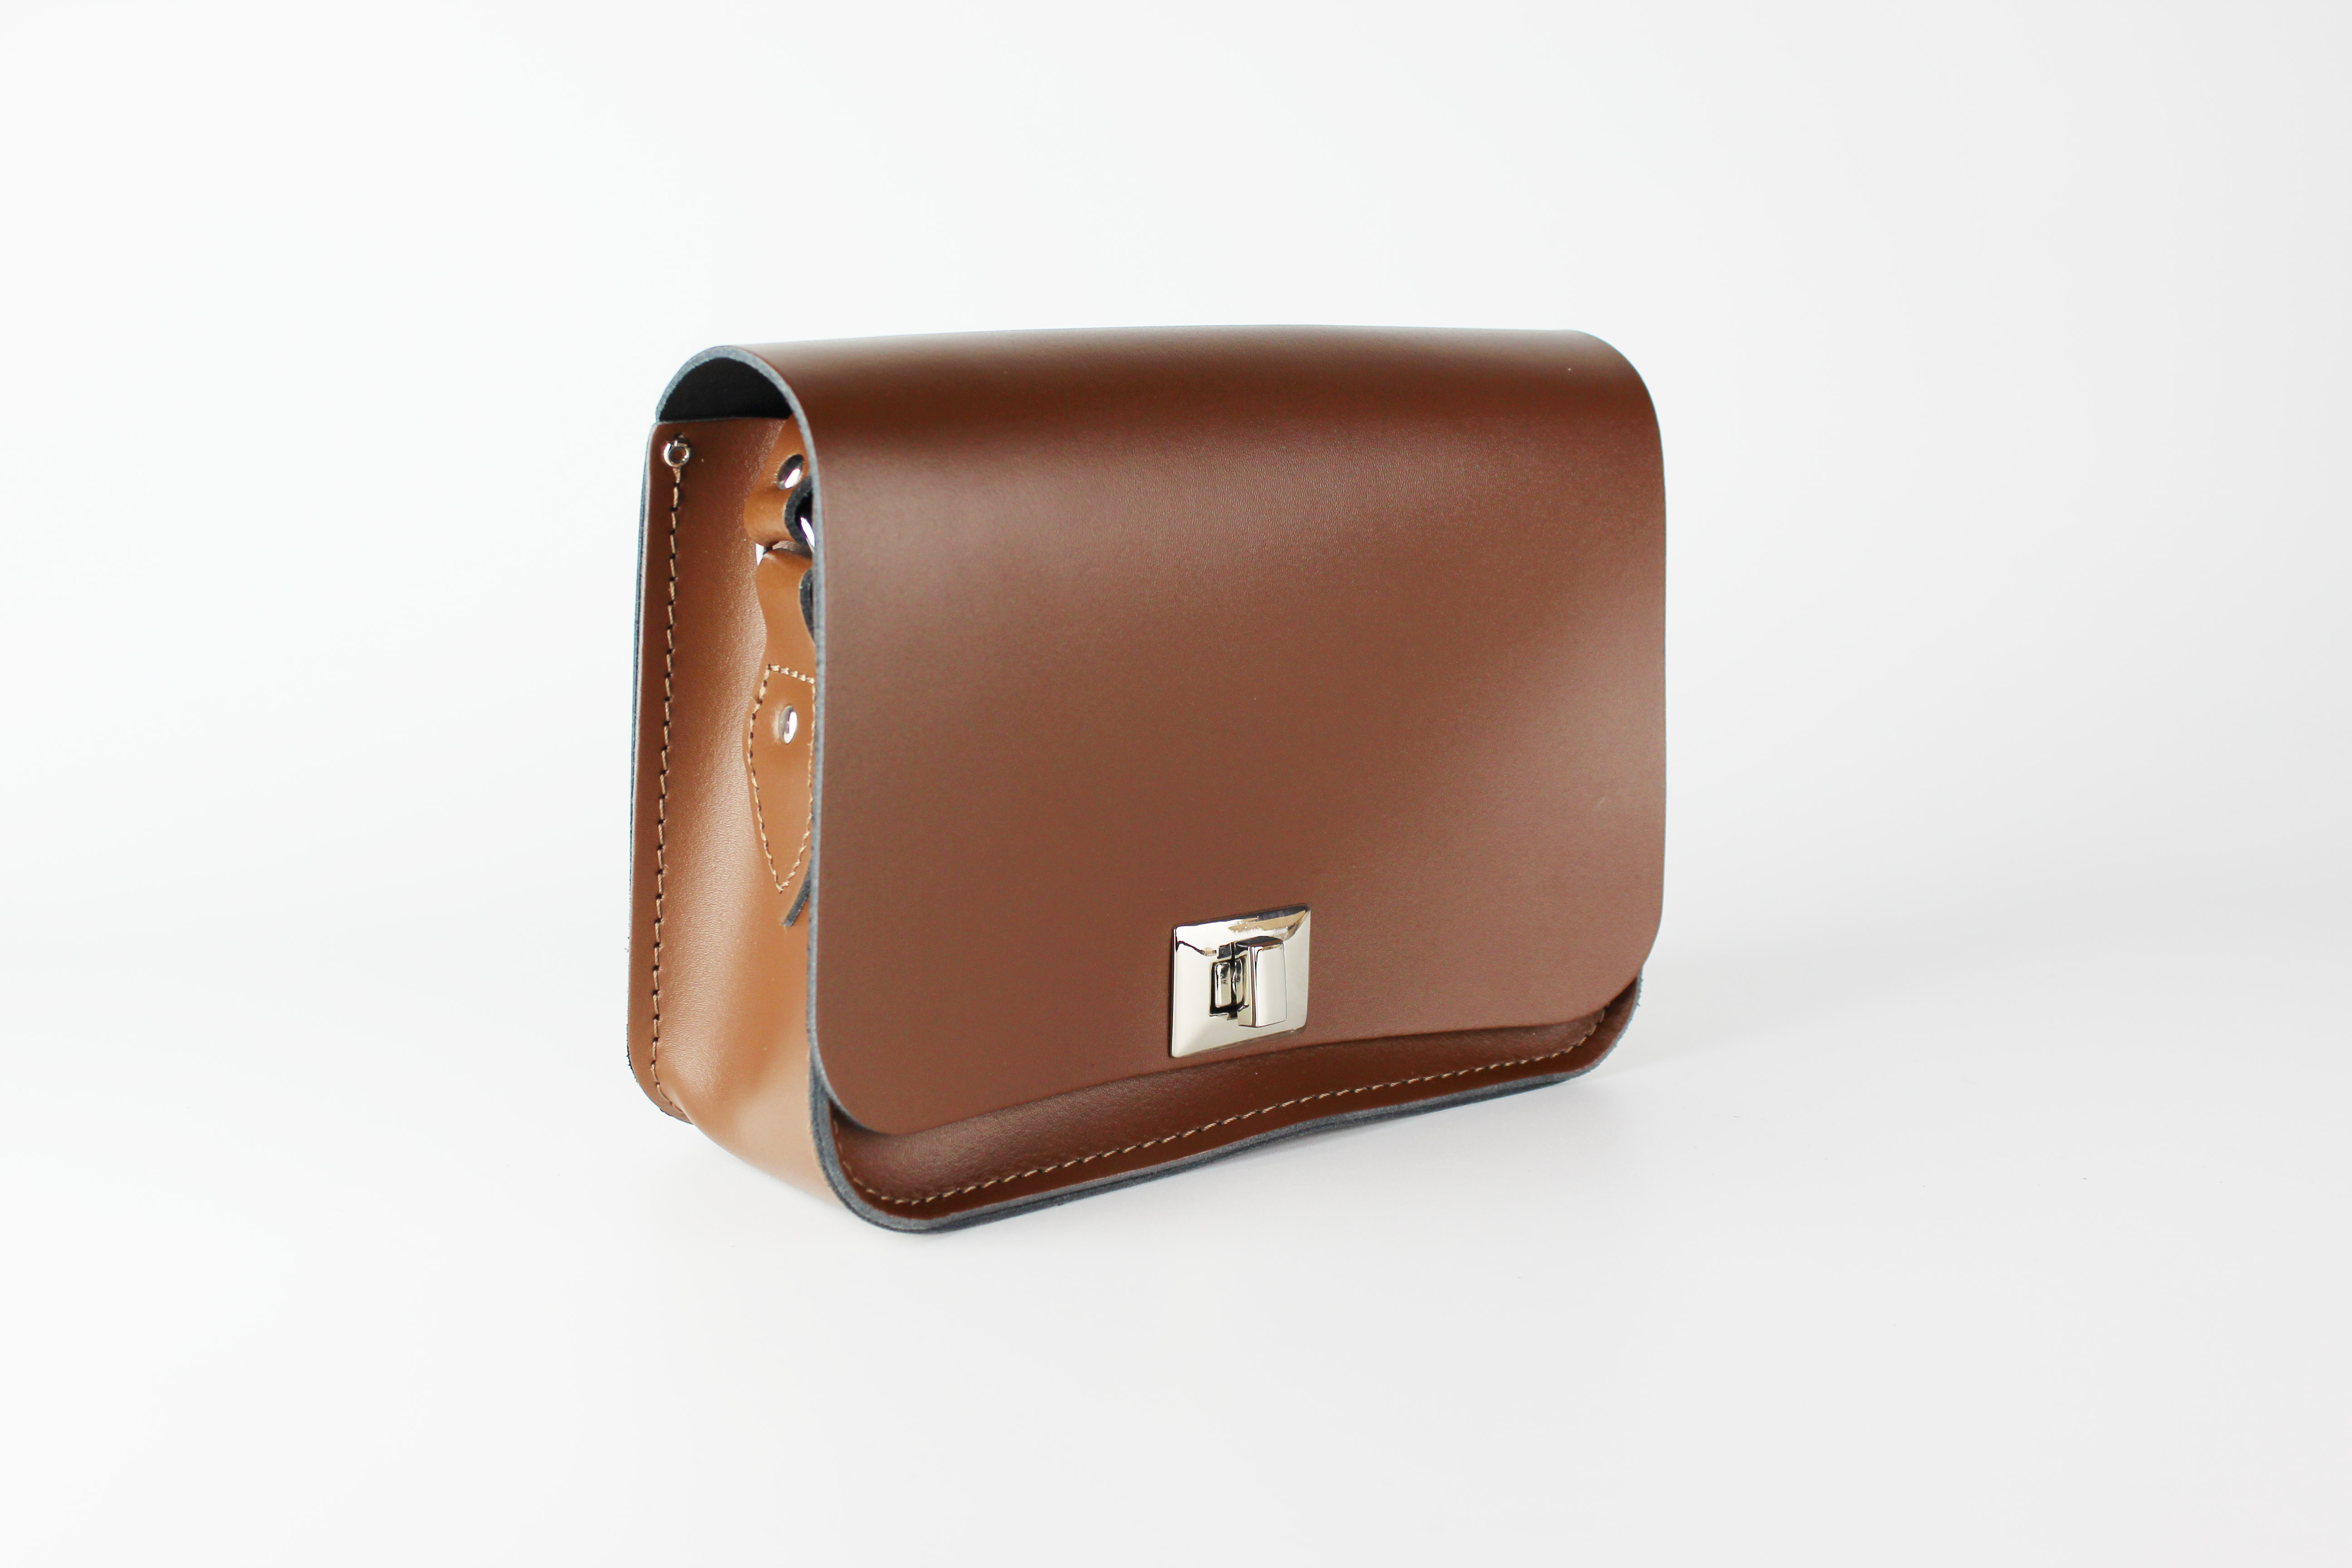 Chestnut Brown Pixie Bag Medium - The Leather Satchel Co.